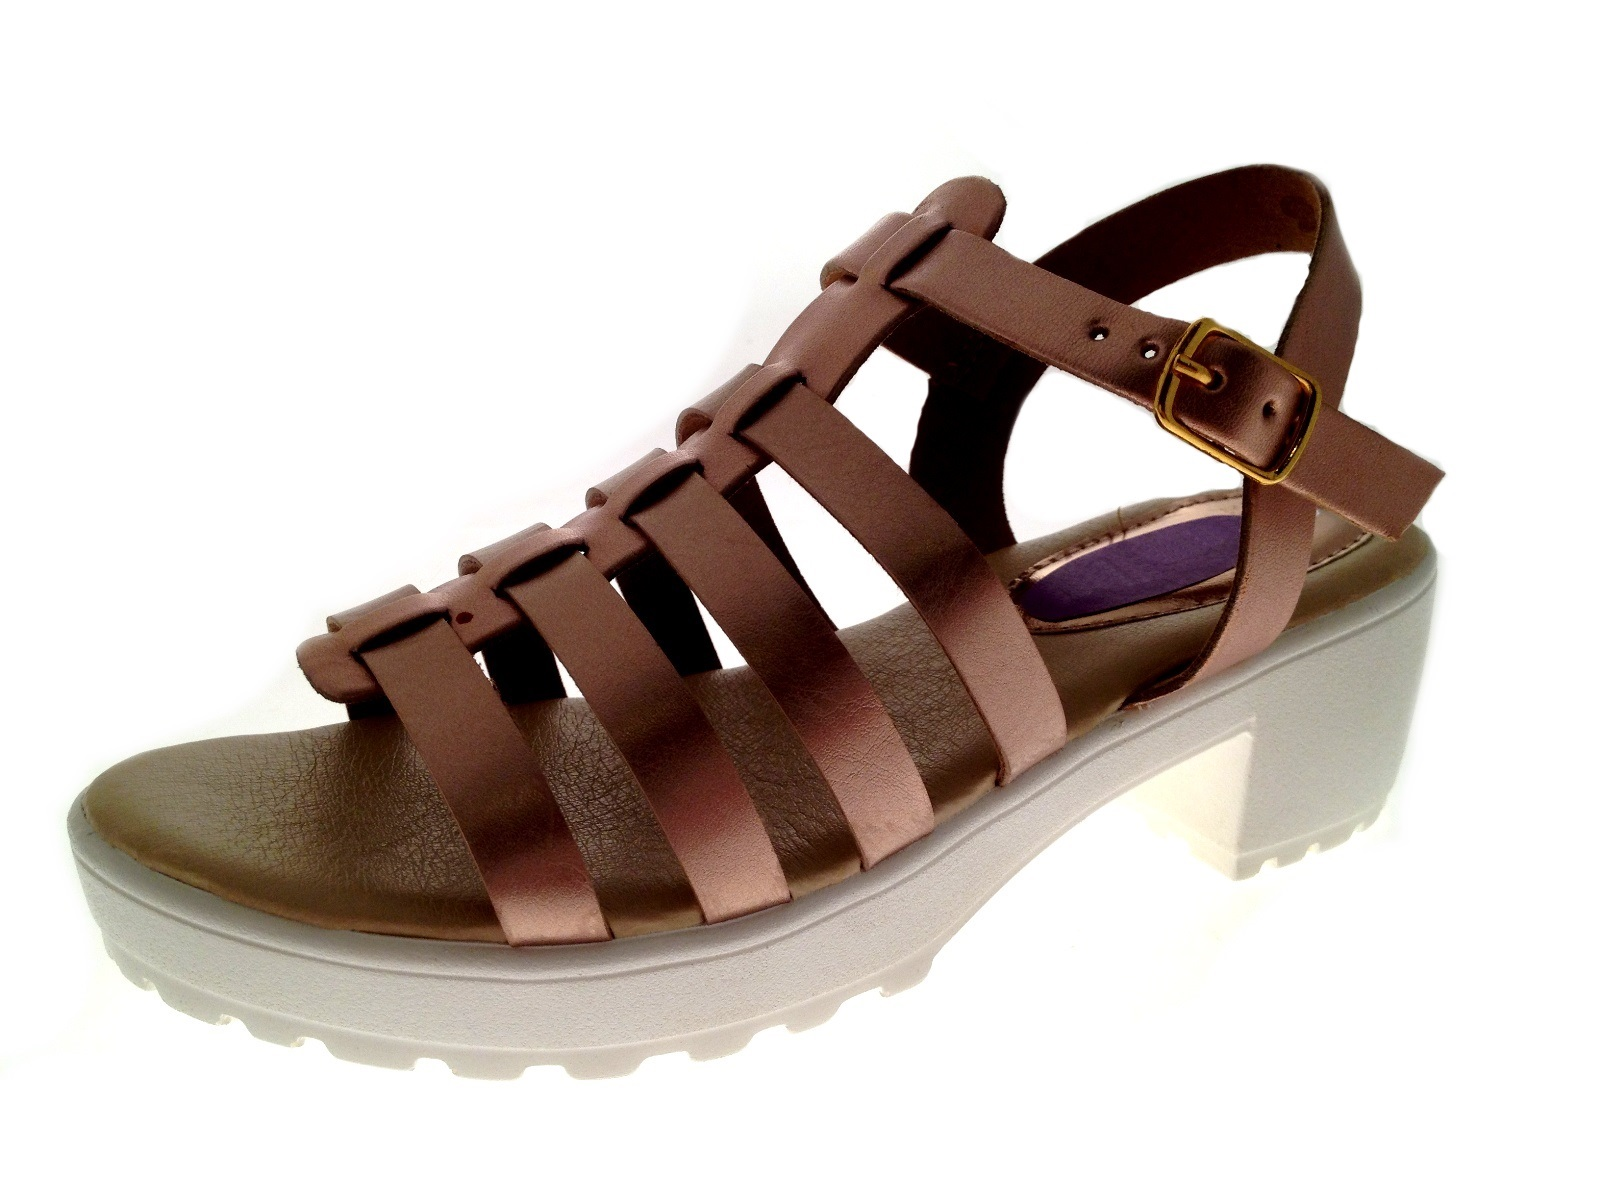 Girls Gladiator / T Bar Sandals Chunky Block Heels Kids ...